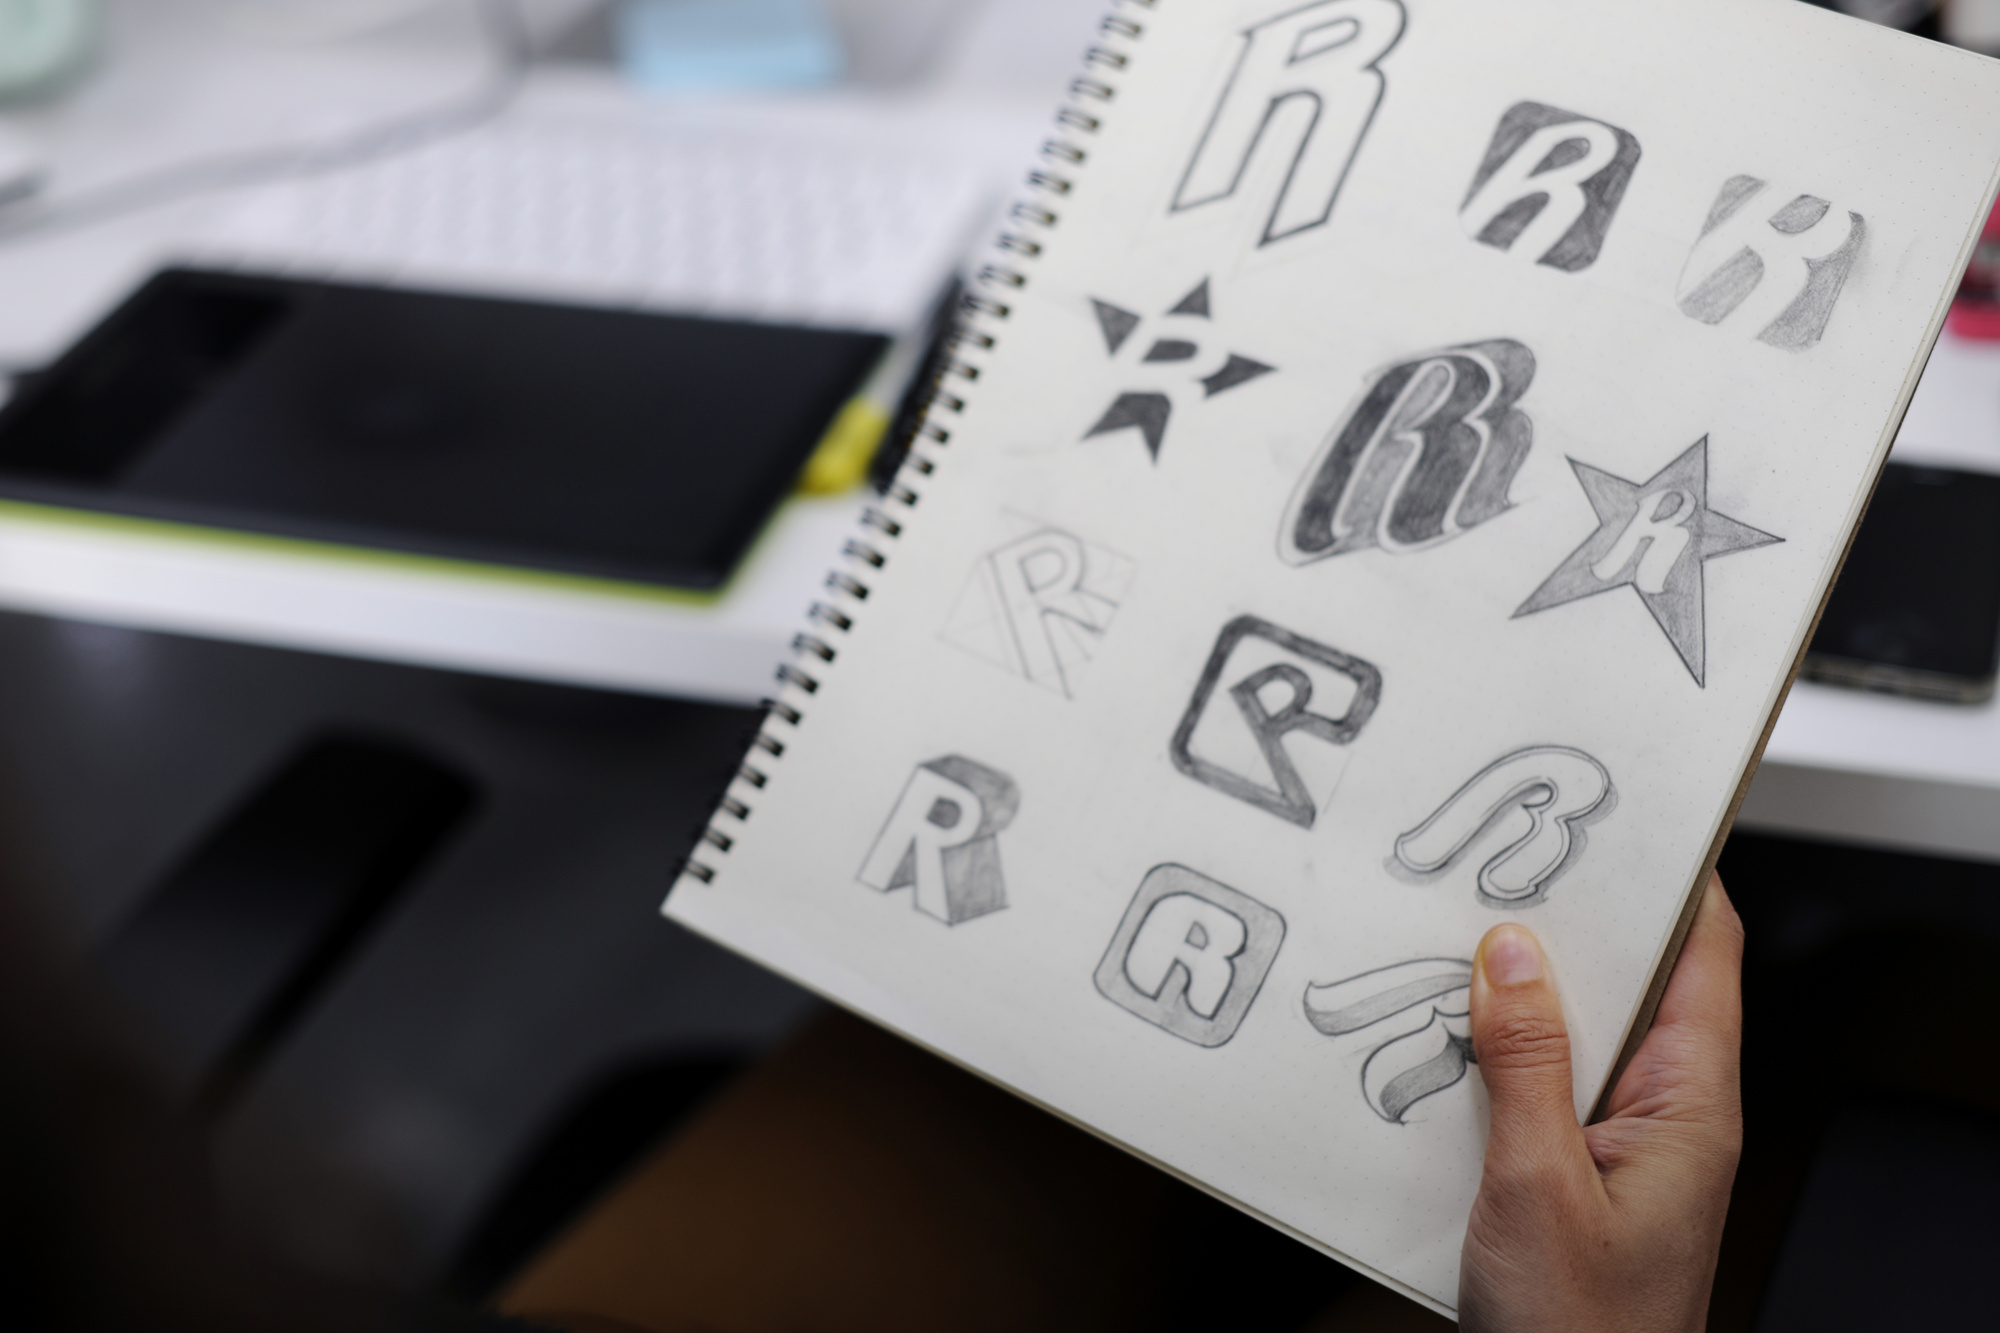 logo sketches on notebook